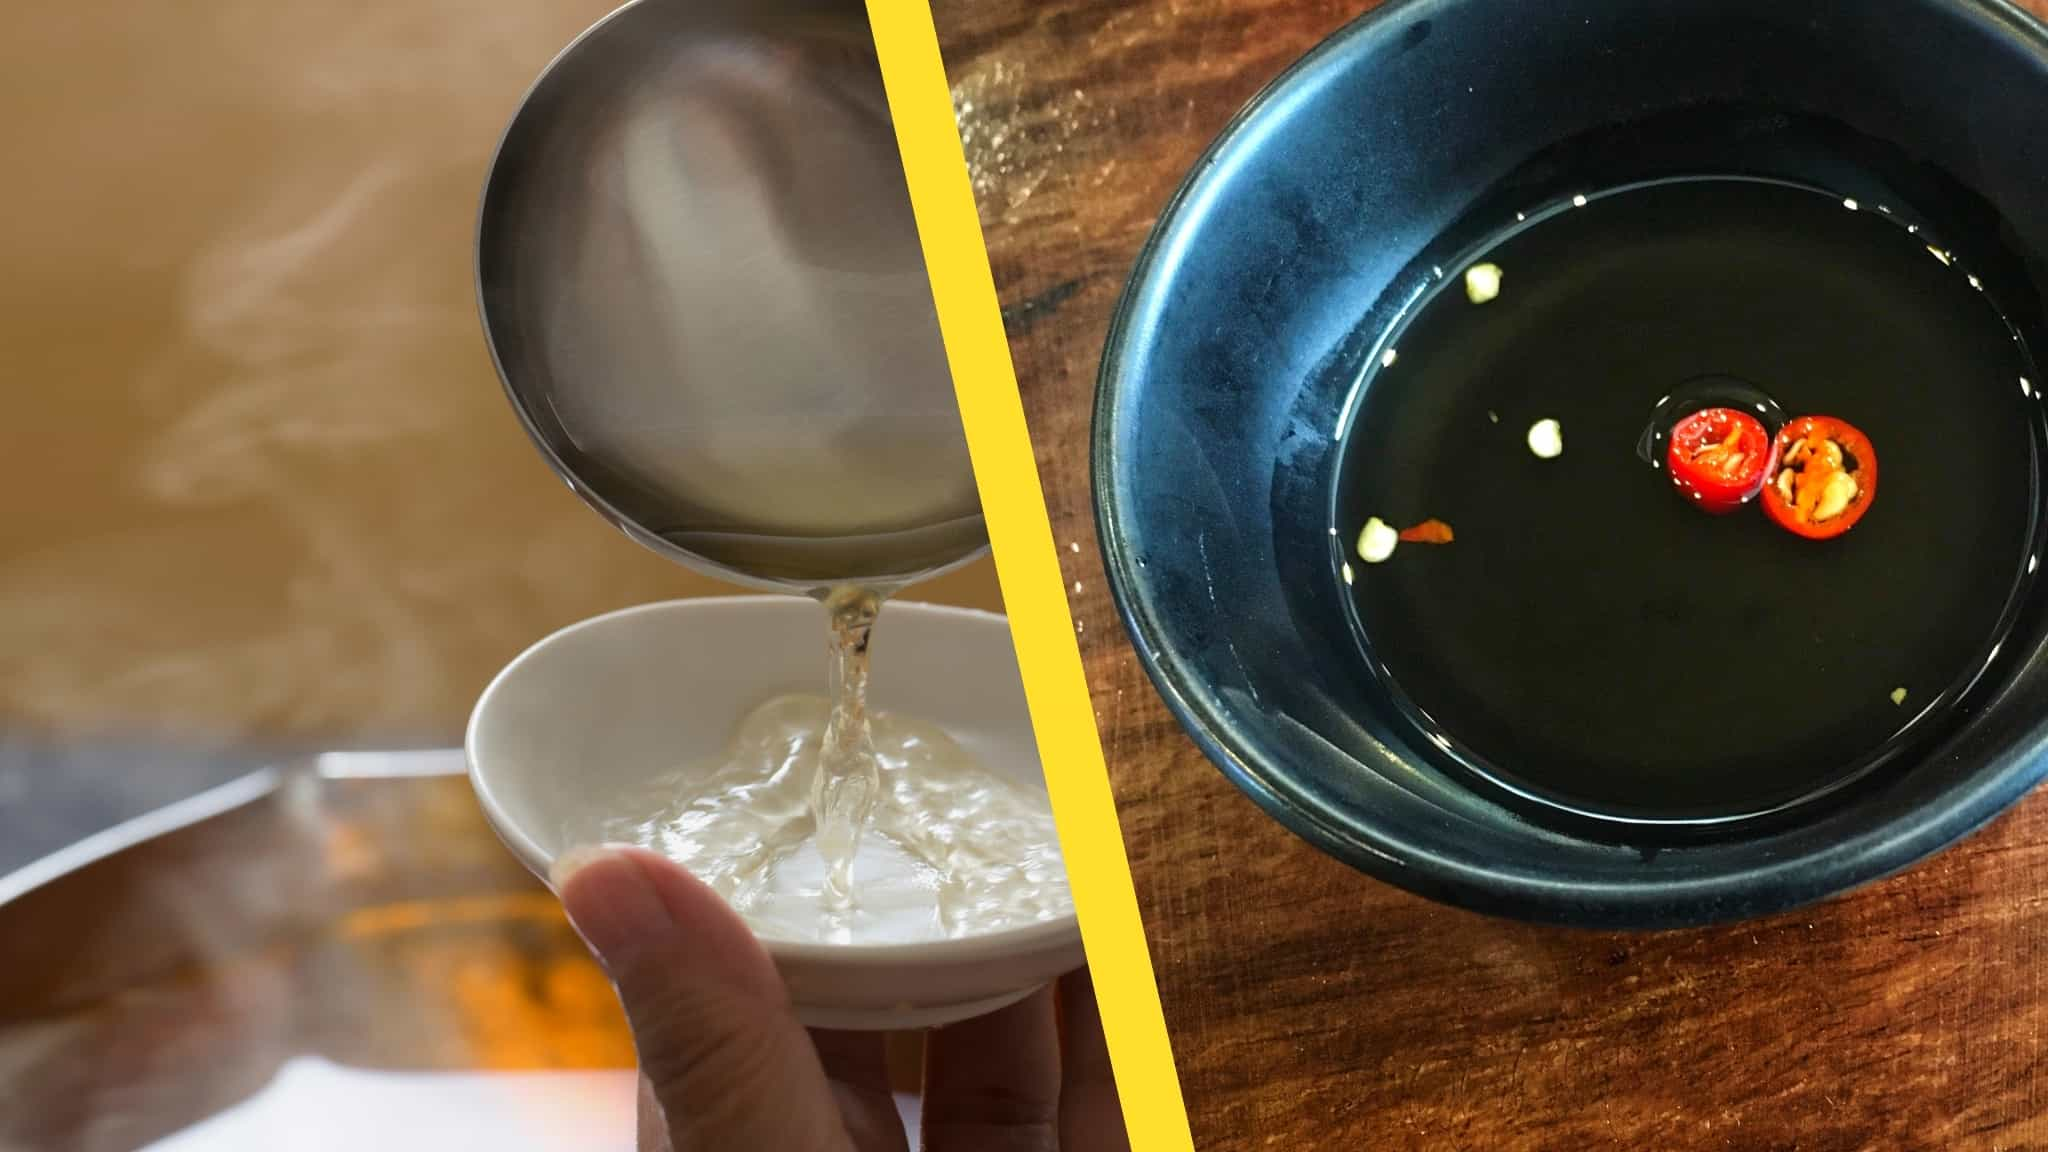 Dashi vs sauce de poisson: fabricants d'umami mais pas interchangeables